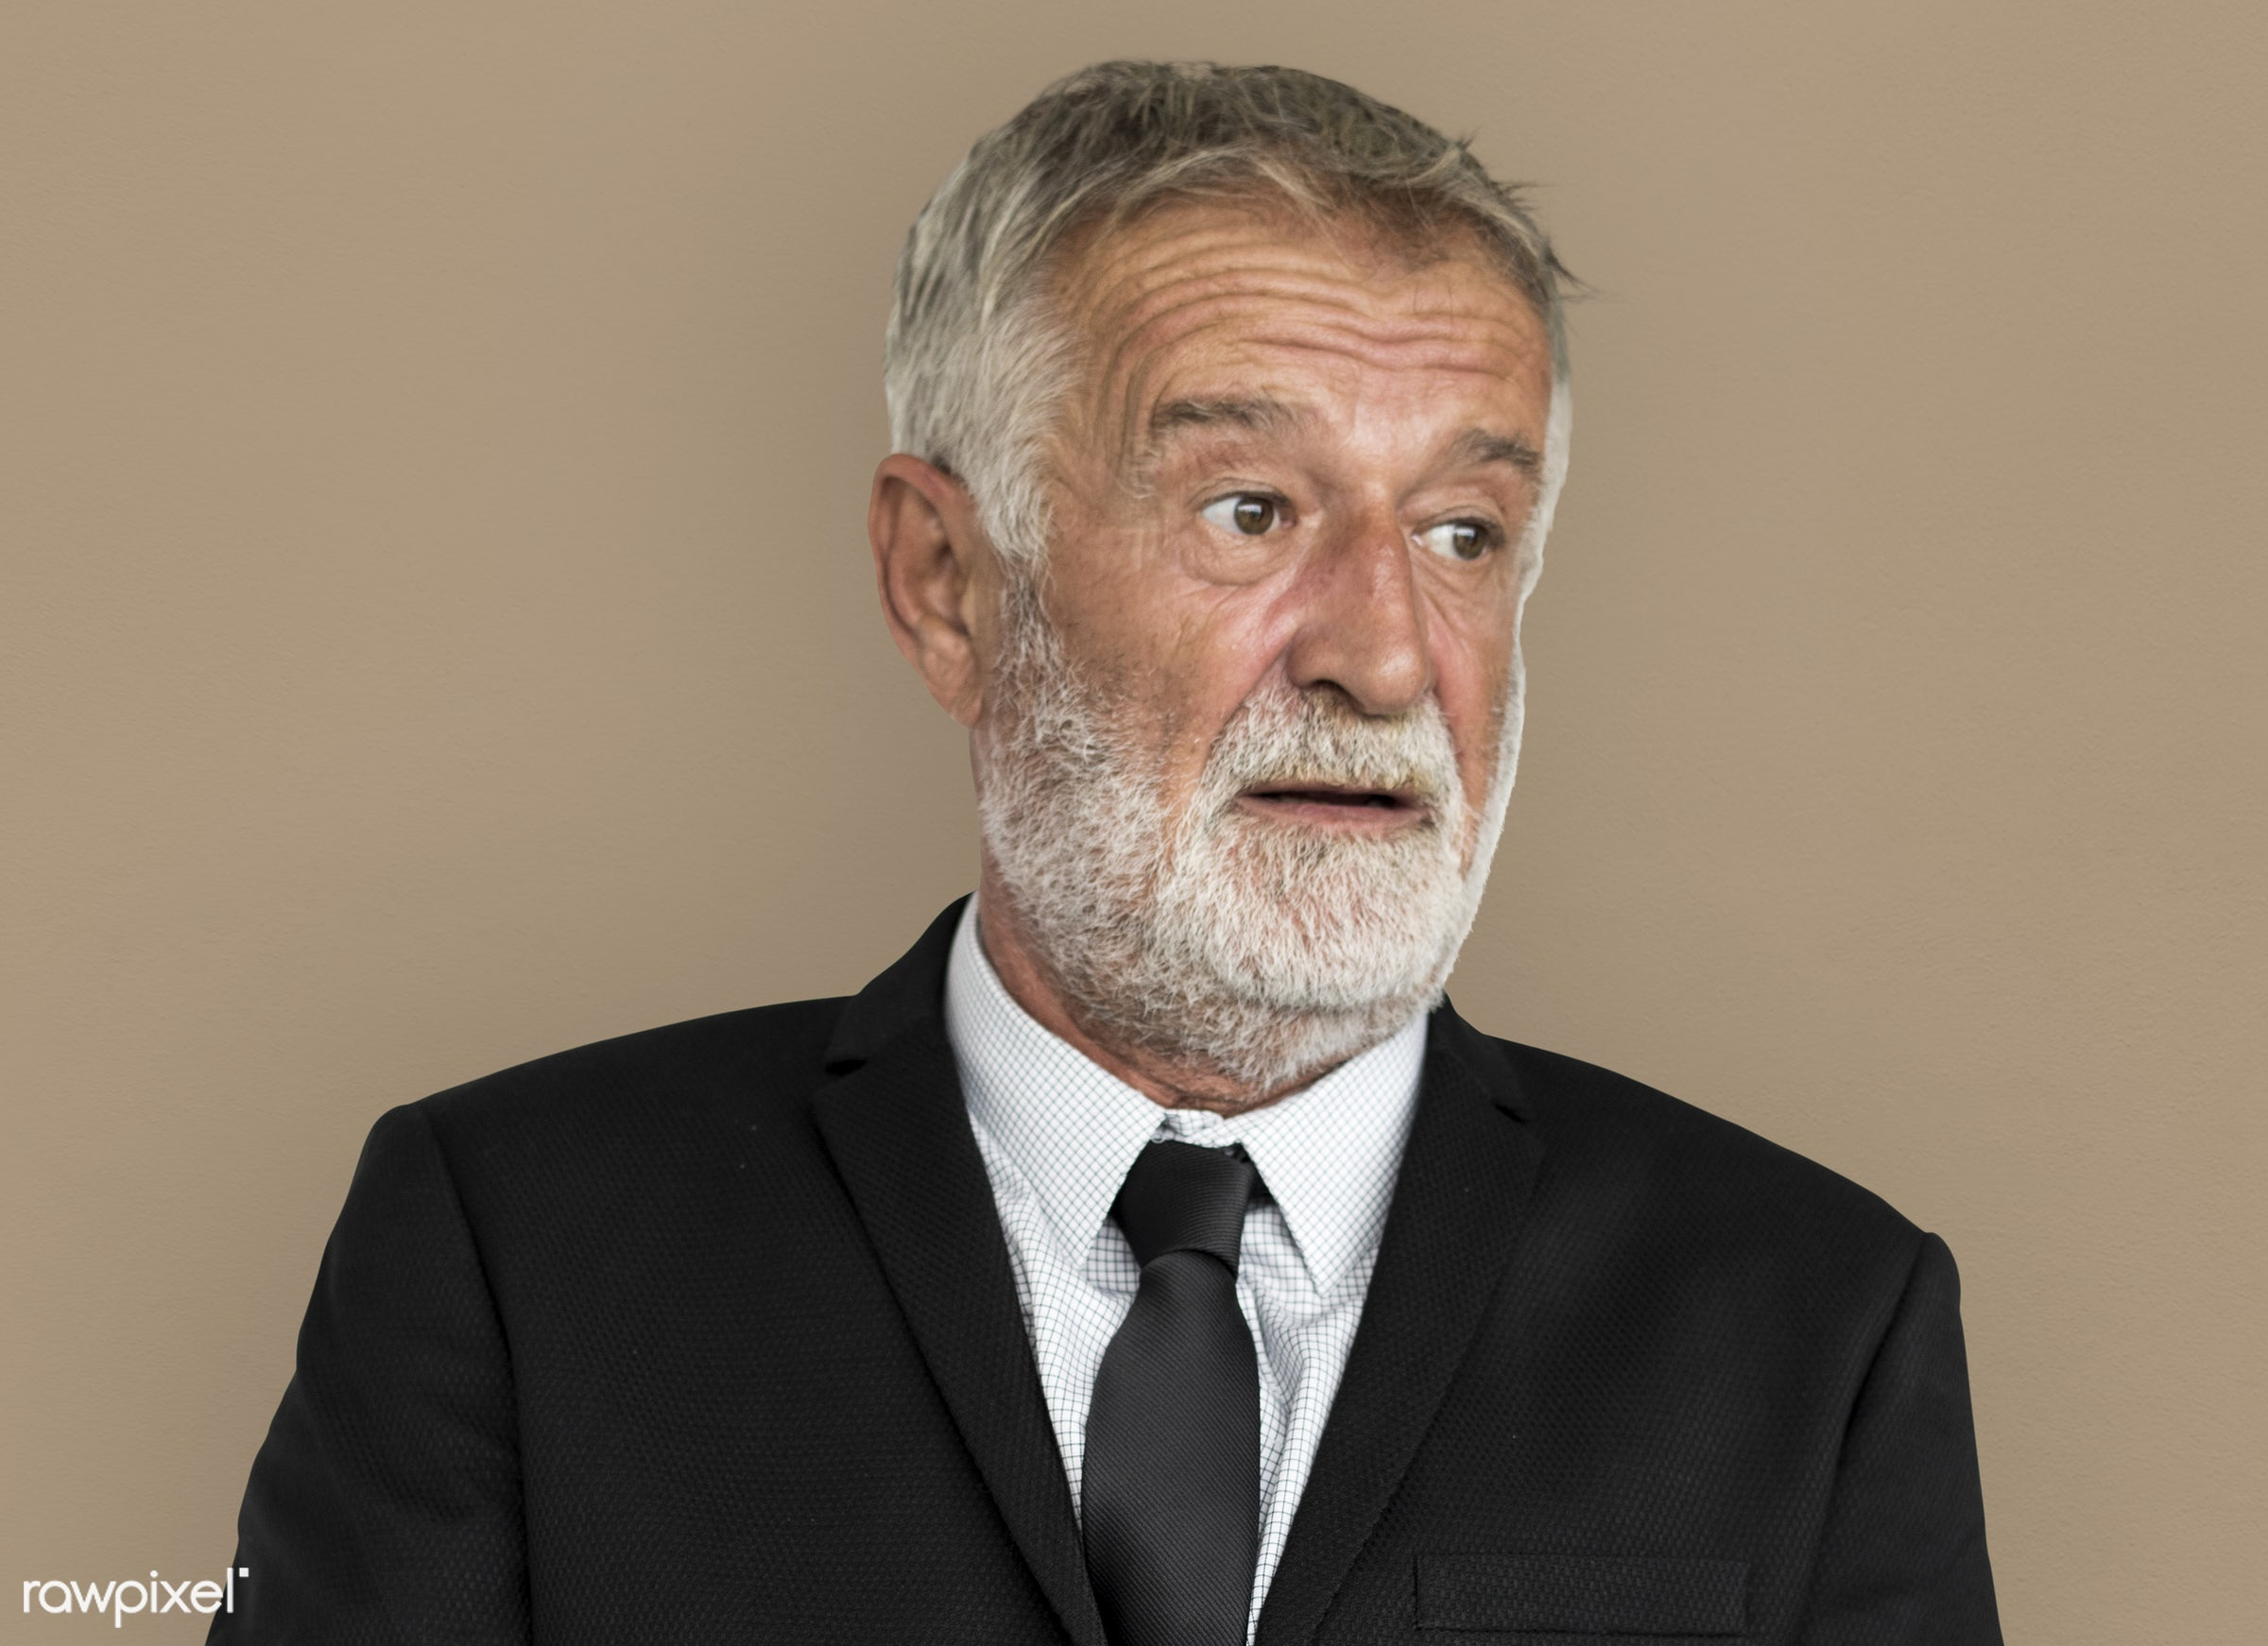 expression, studio, old, person, people, business, caucasian, focused, working, serious, man, neutral mood, work, isolated,...